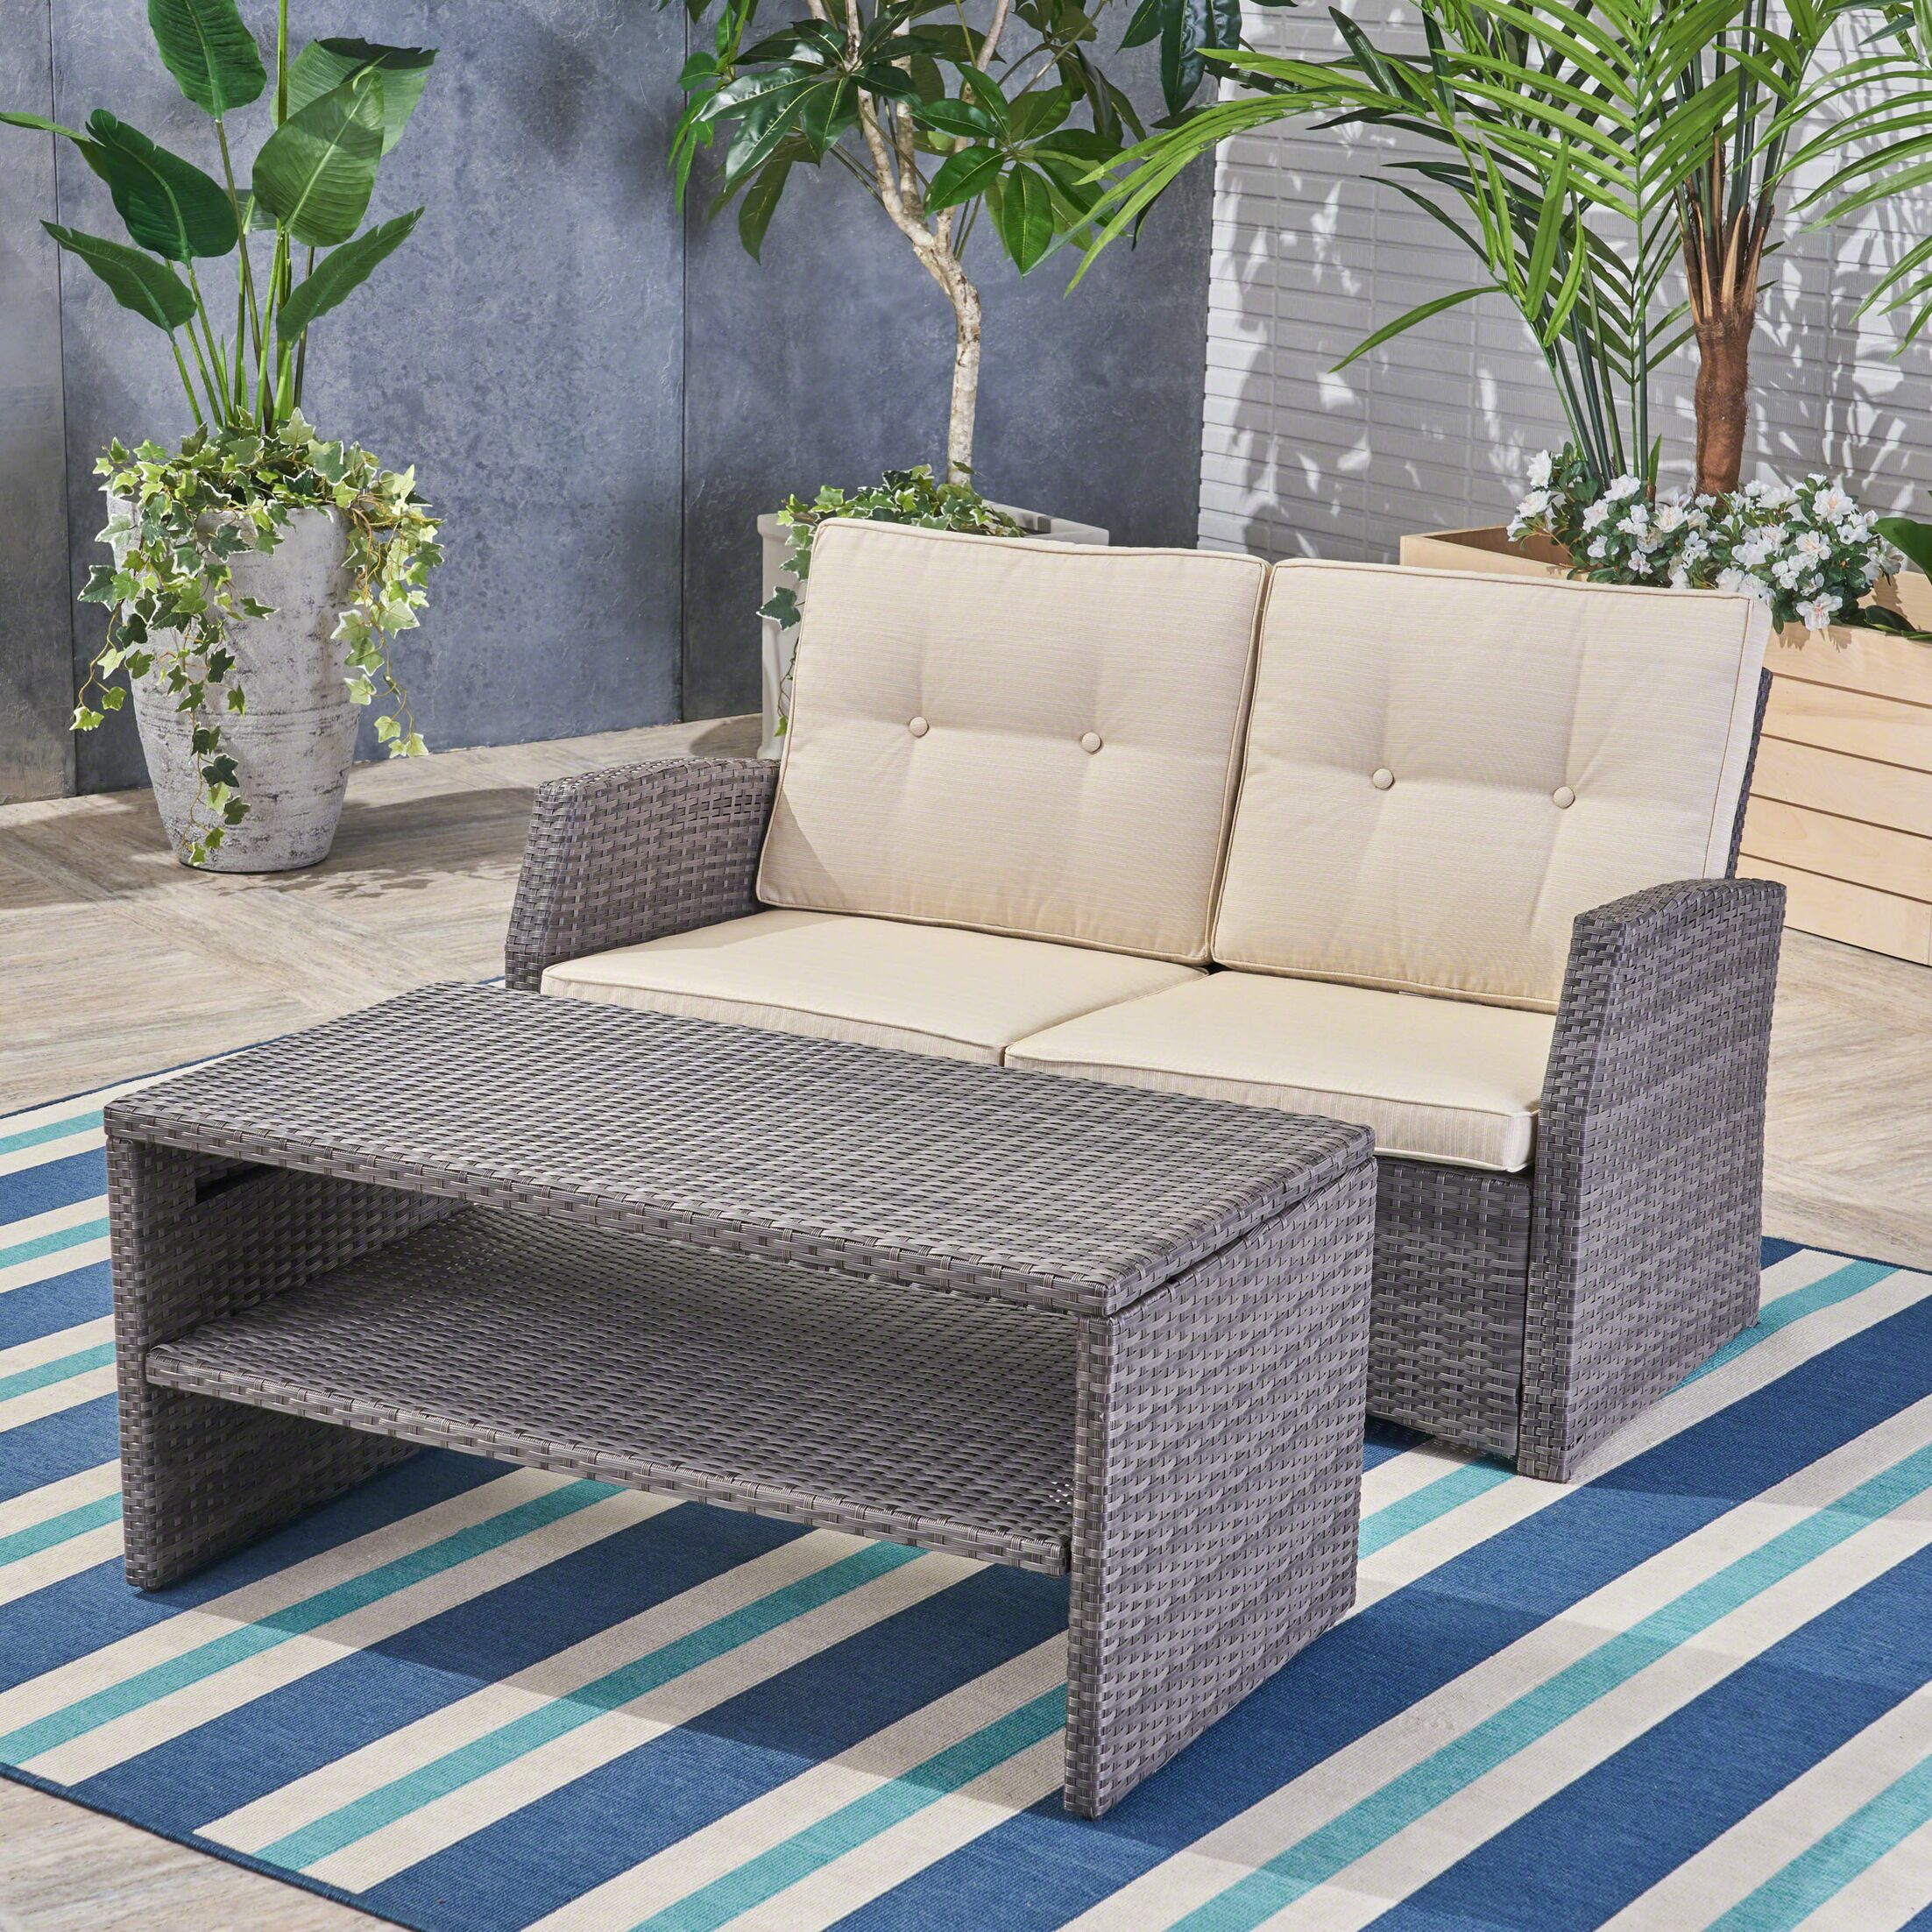 Harrel 2 Piece Rattan Sofa Seating Group with Cushions Frame Finish: Gray